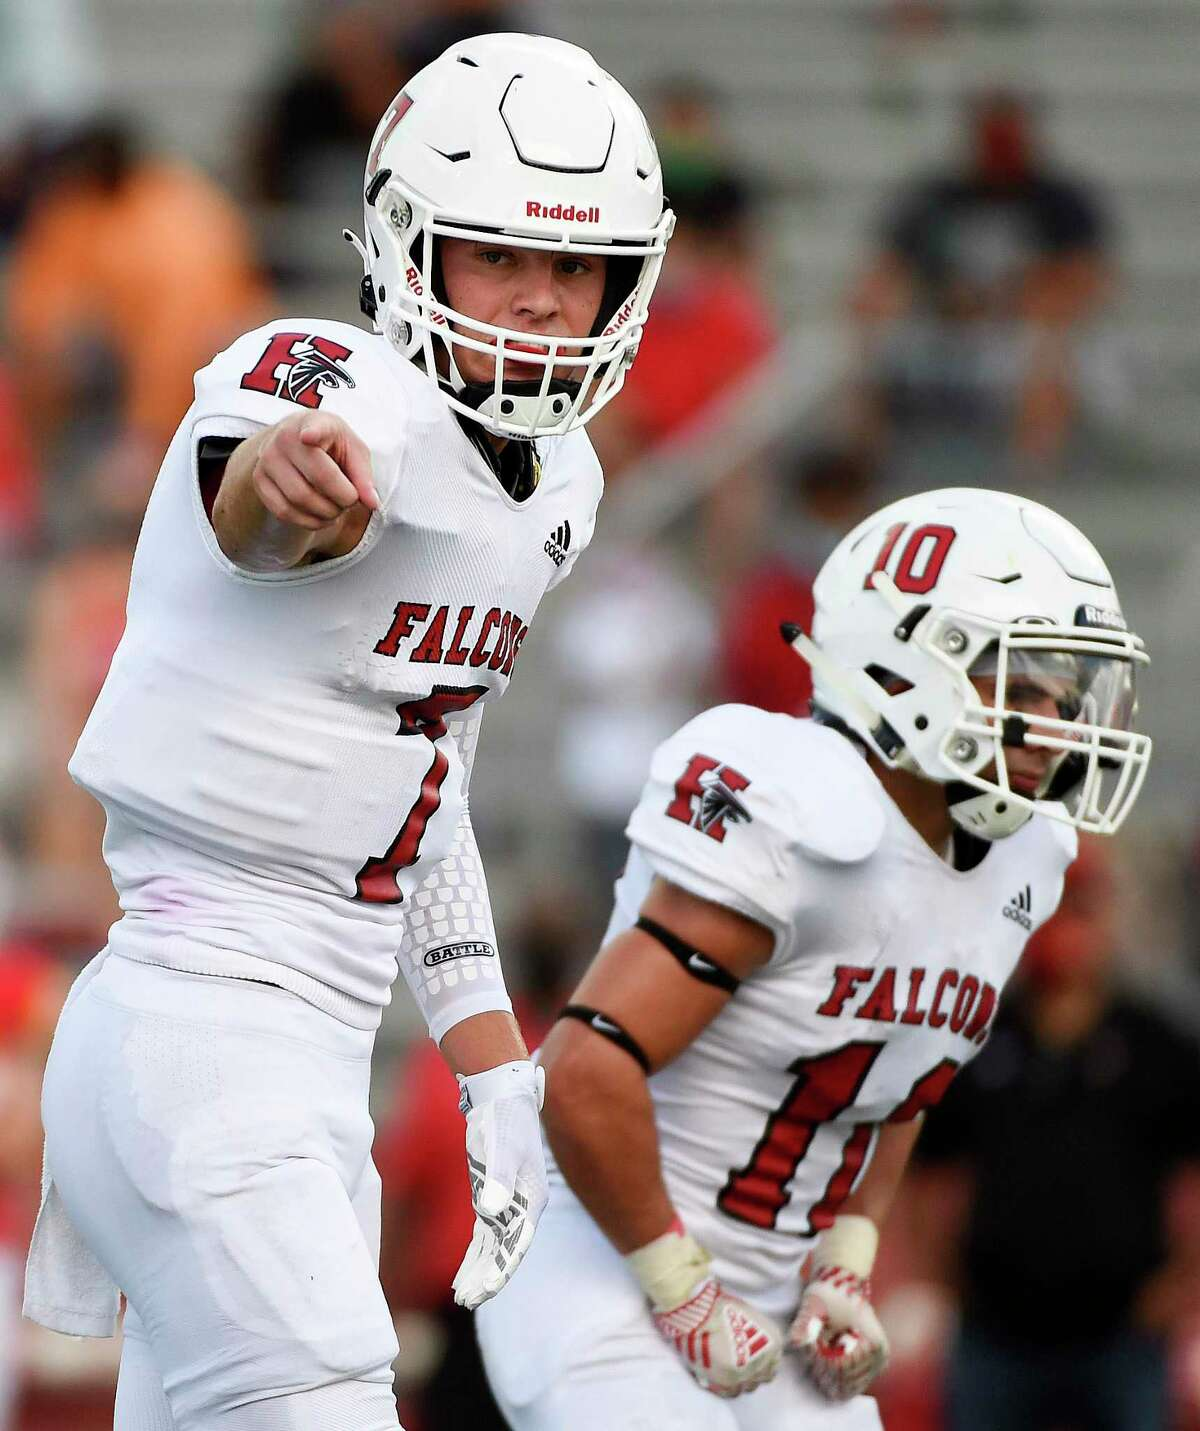 Stafford quarterback Luke Thomas, left, gives instructions during the first half of a high school football game against Stafford, Saturday, Aug. 29, 2020, in Stafford, TX.